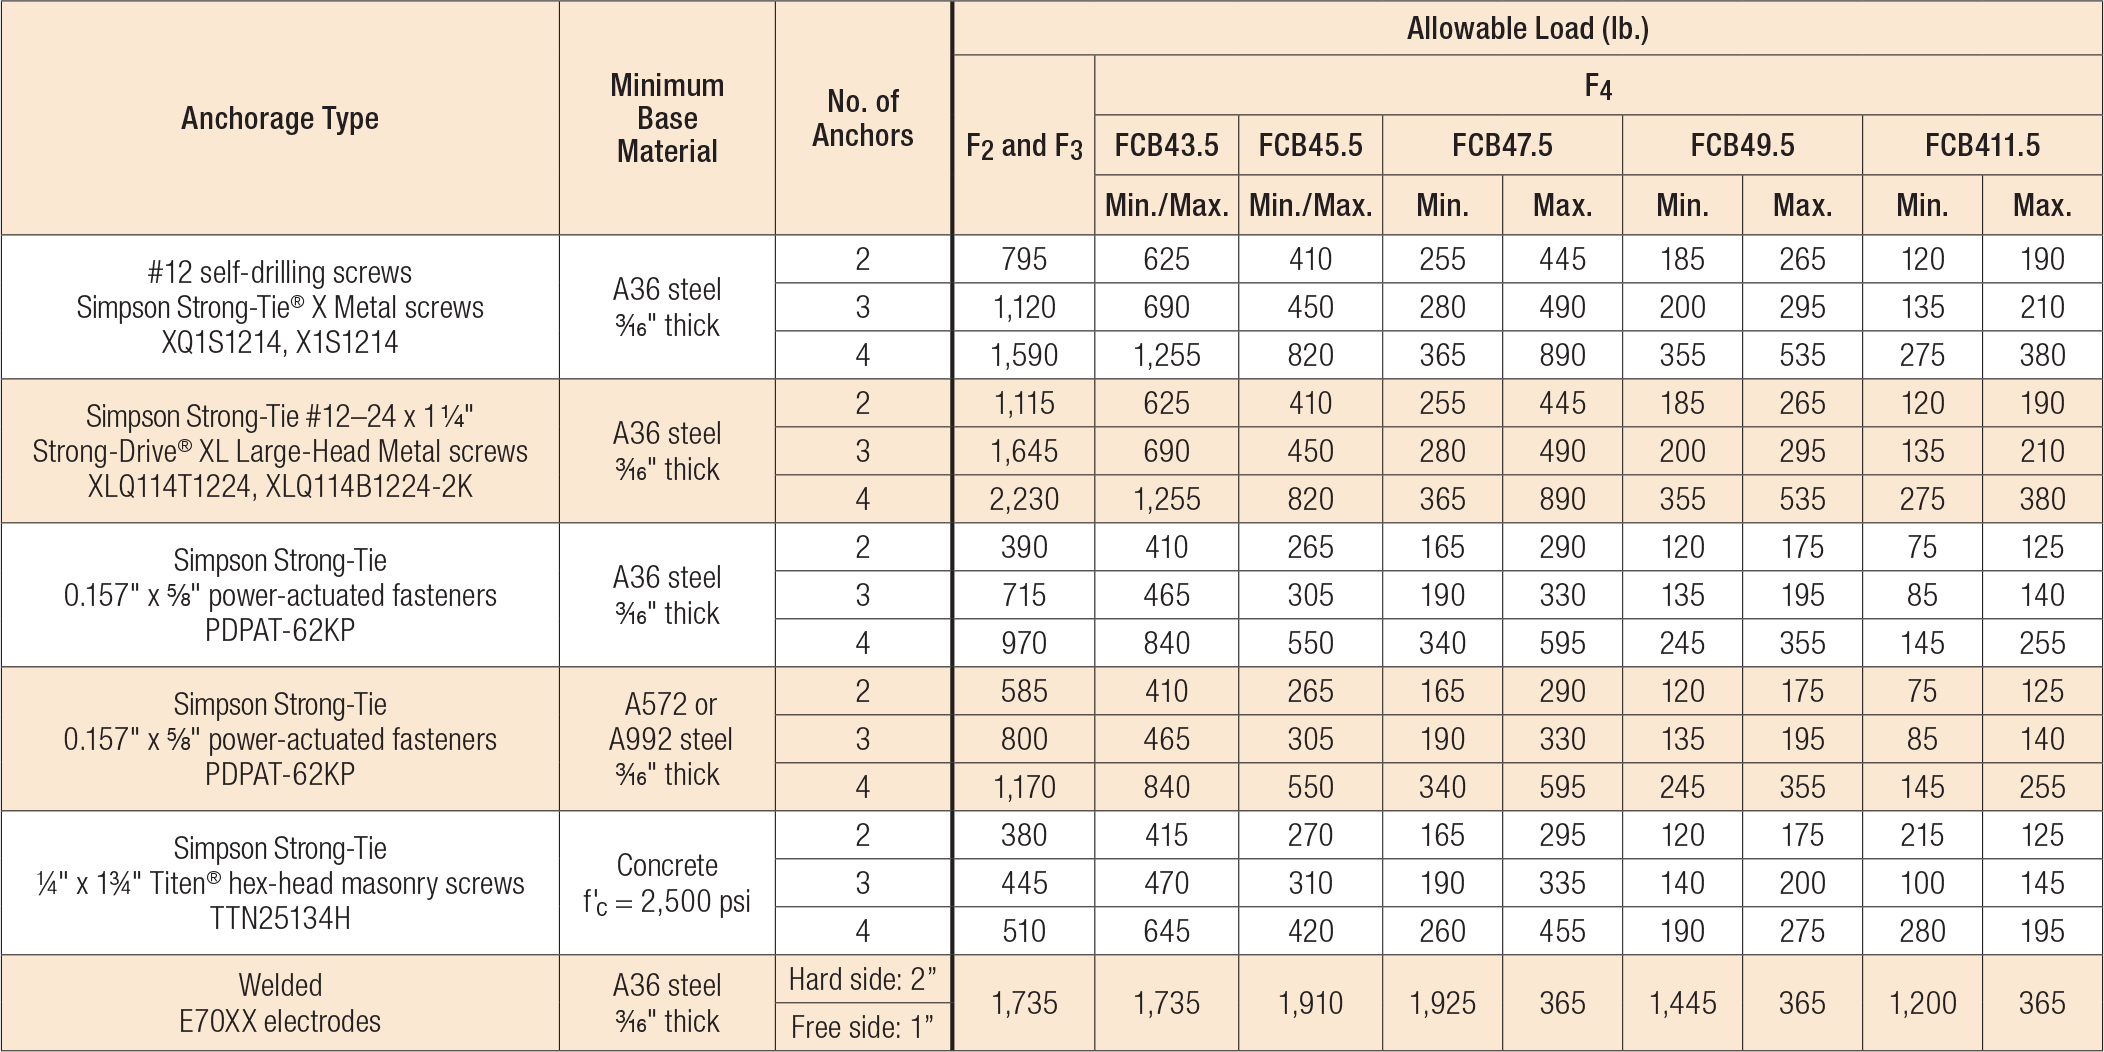 Load Table - FCB Allowable Anchorage Loads